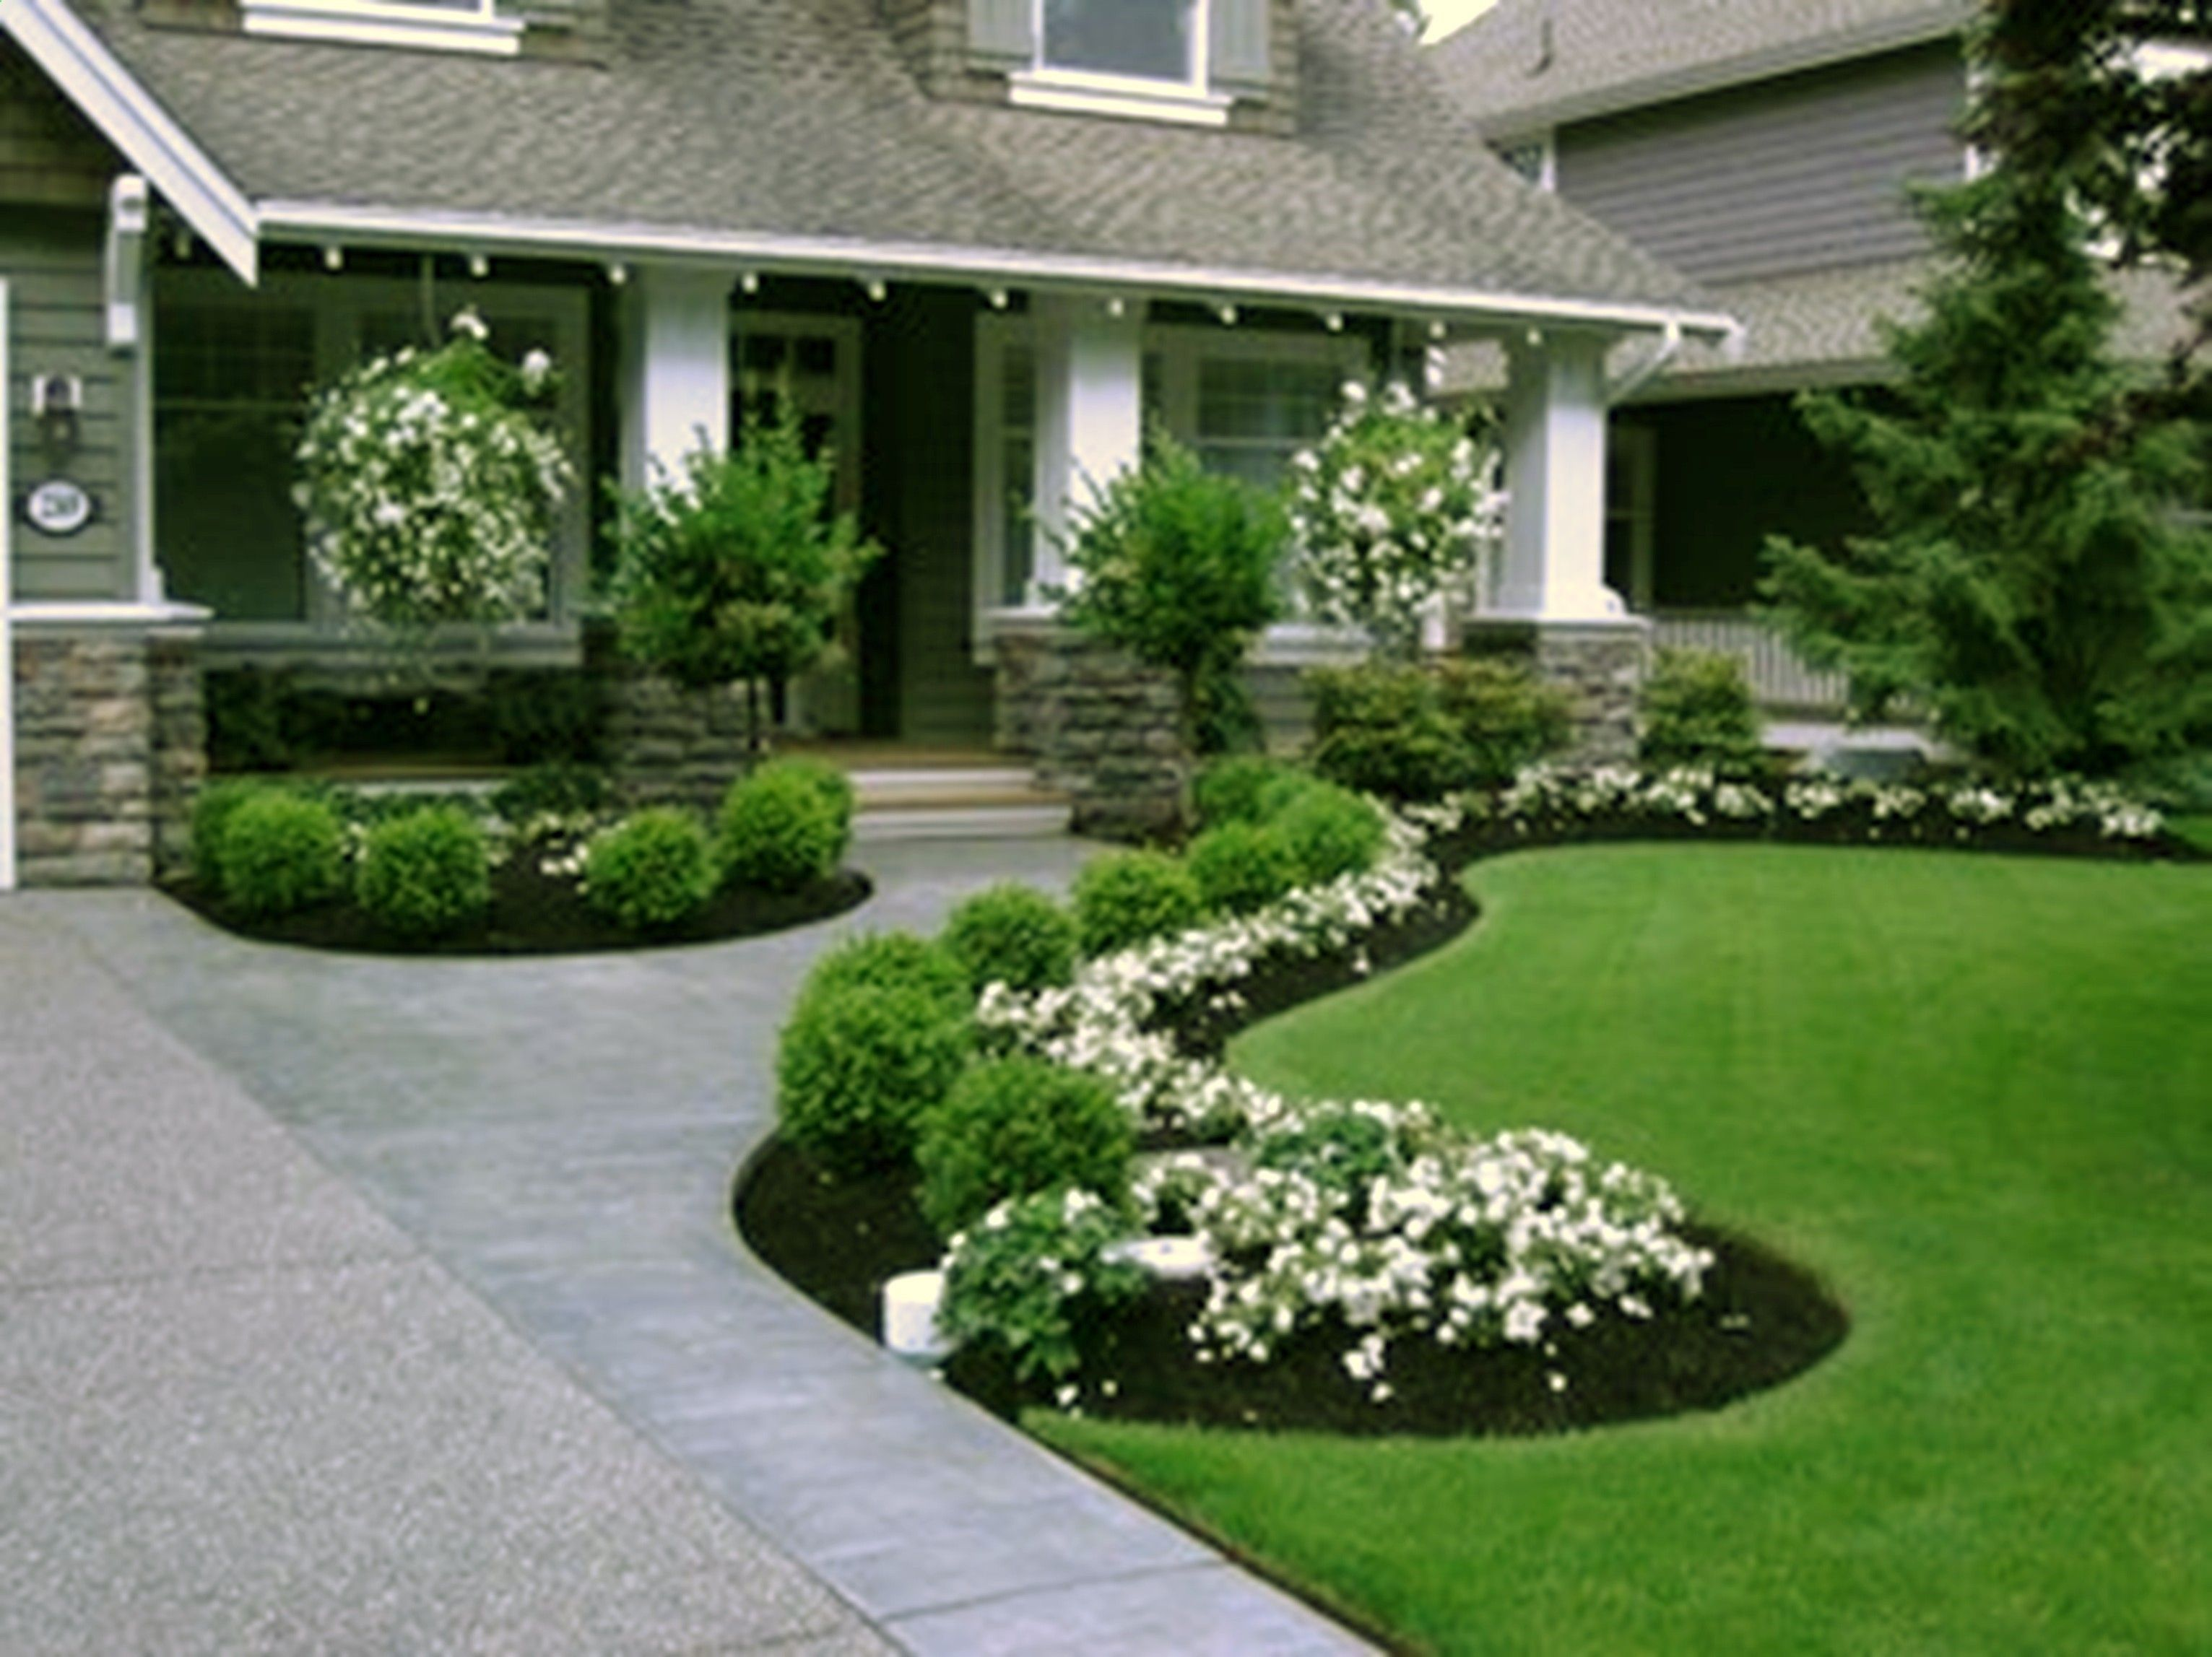 love the curved flower beds with the boxwoods and flowers also the